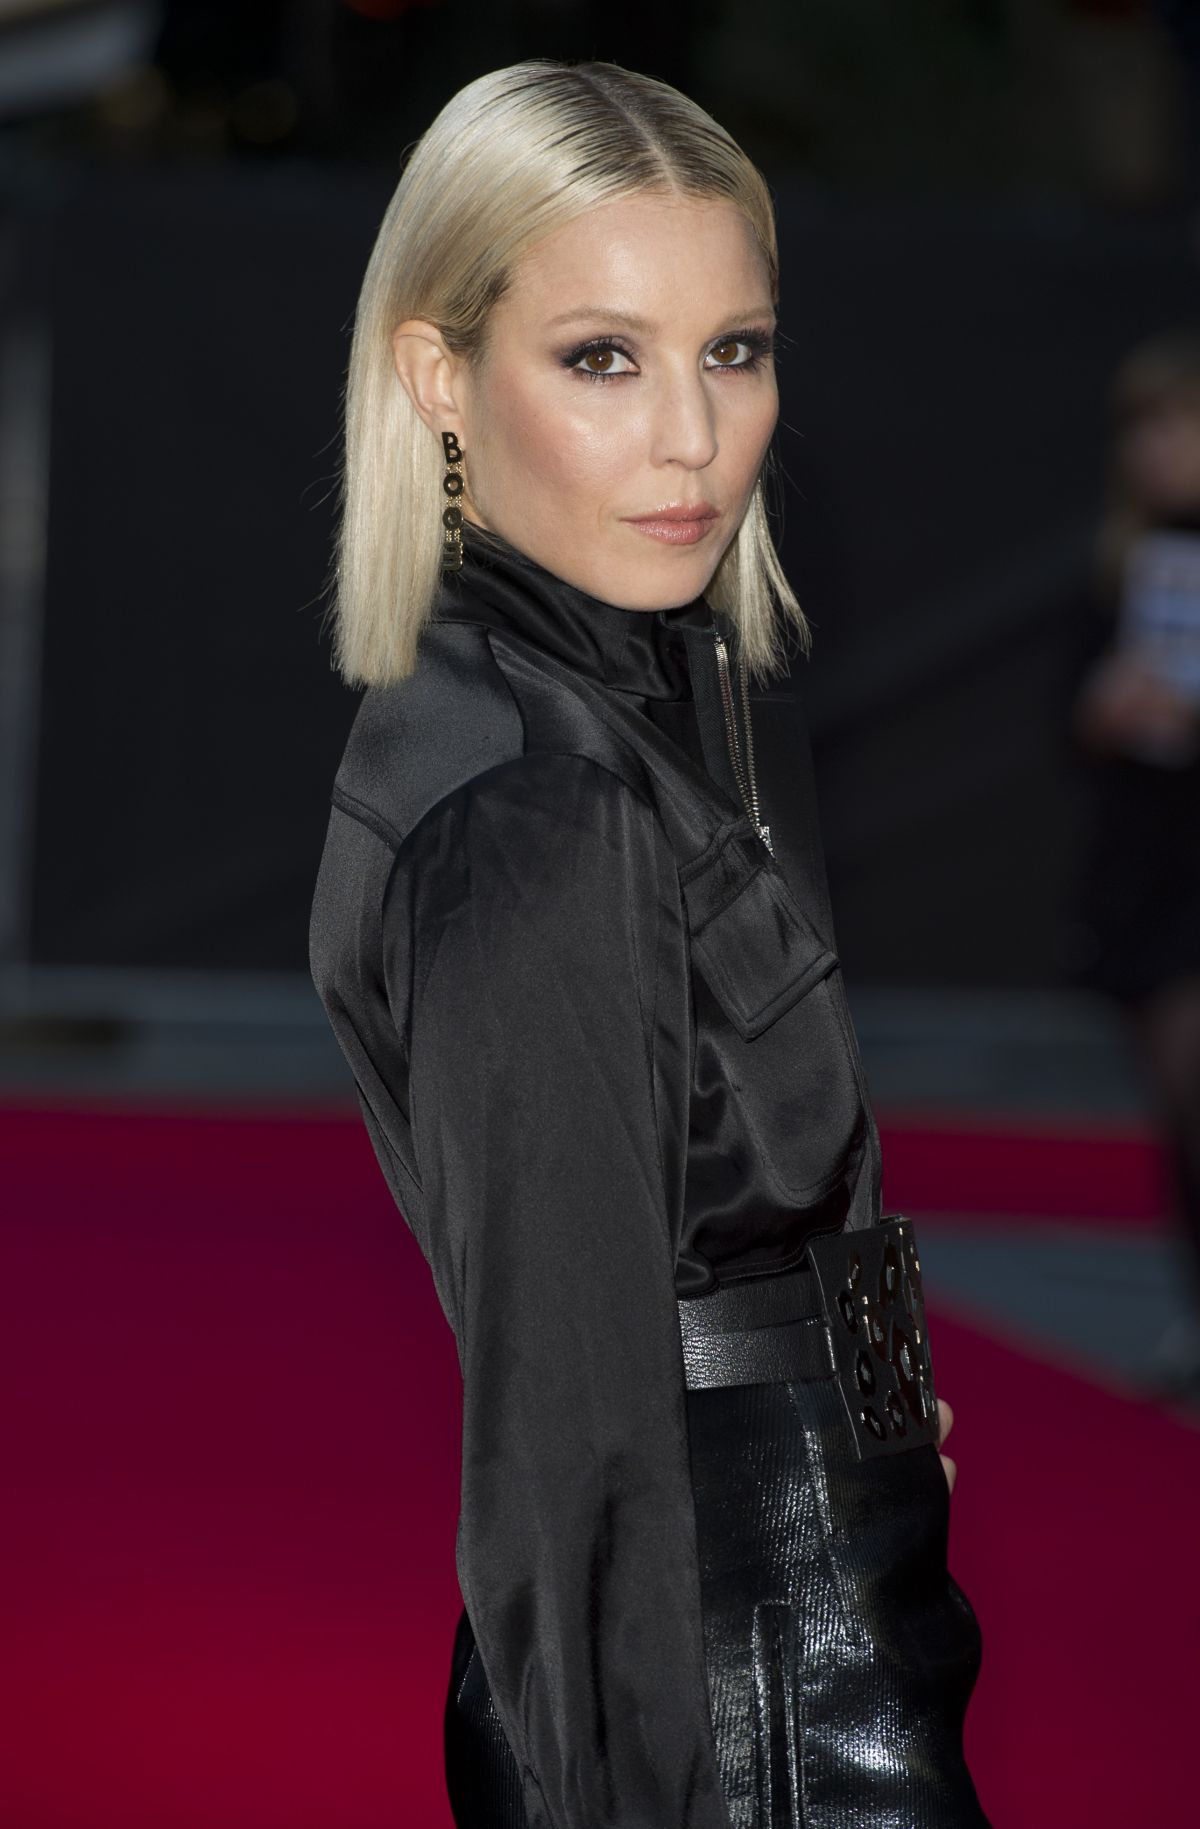 noomi-rapace-arriving-to-screening-of-the-drop-during-the-58th-bfi-london-ff_6